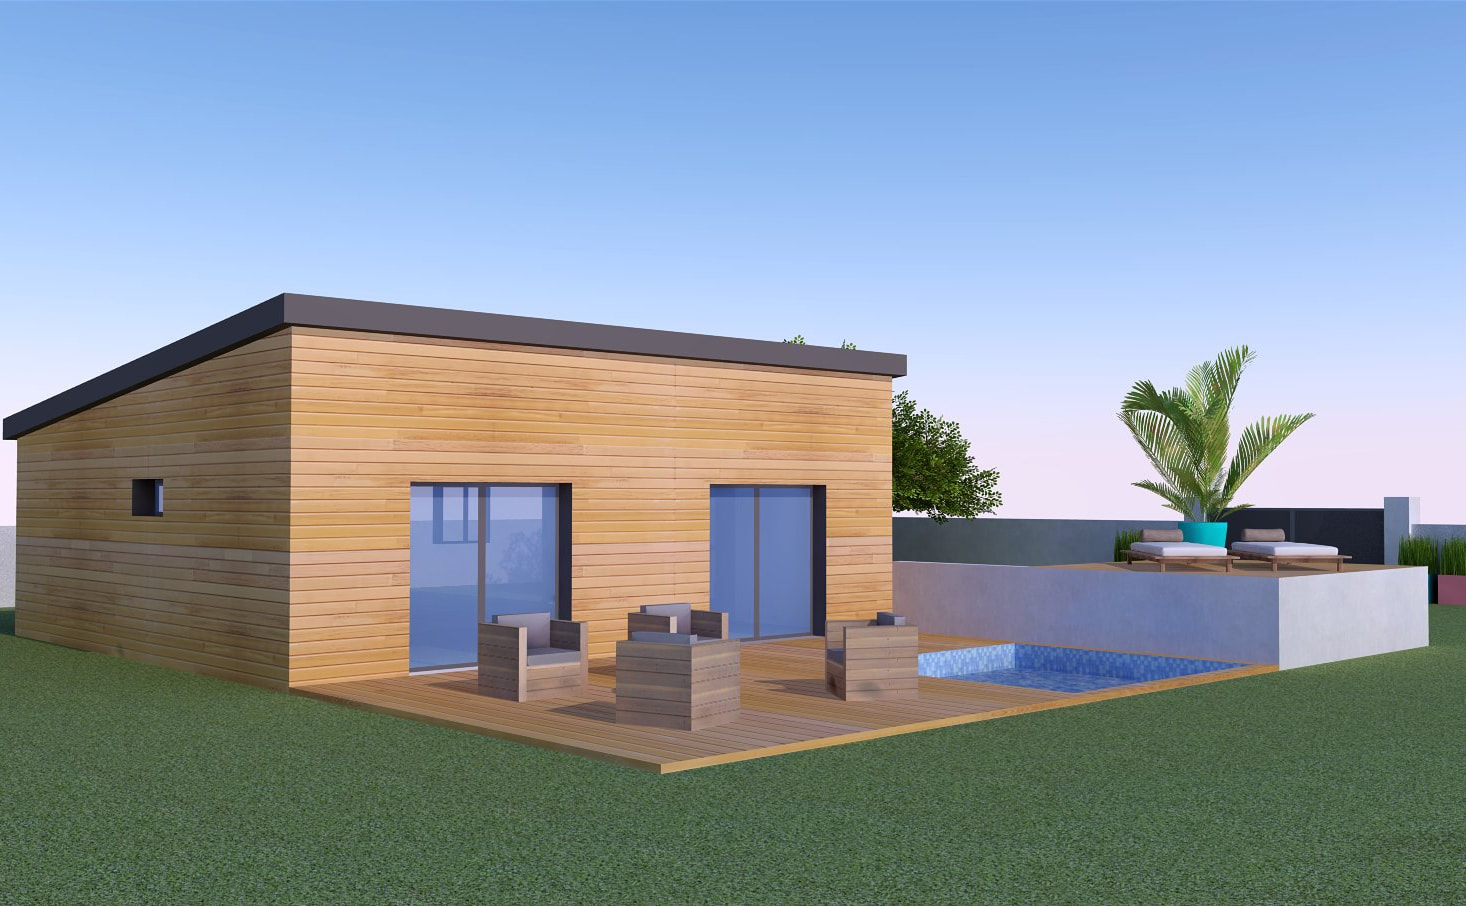 Prix construction maison en bois kit maison bois for Tarif desherbage m2